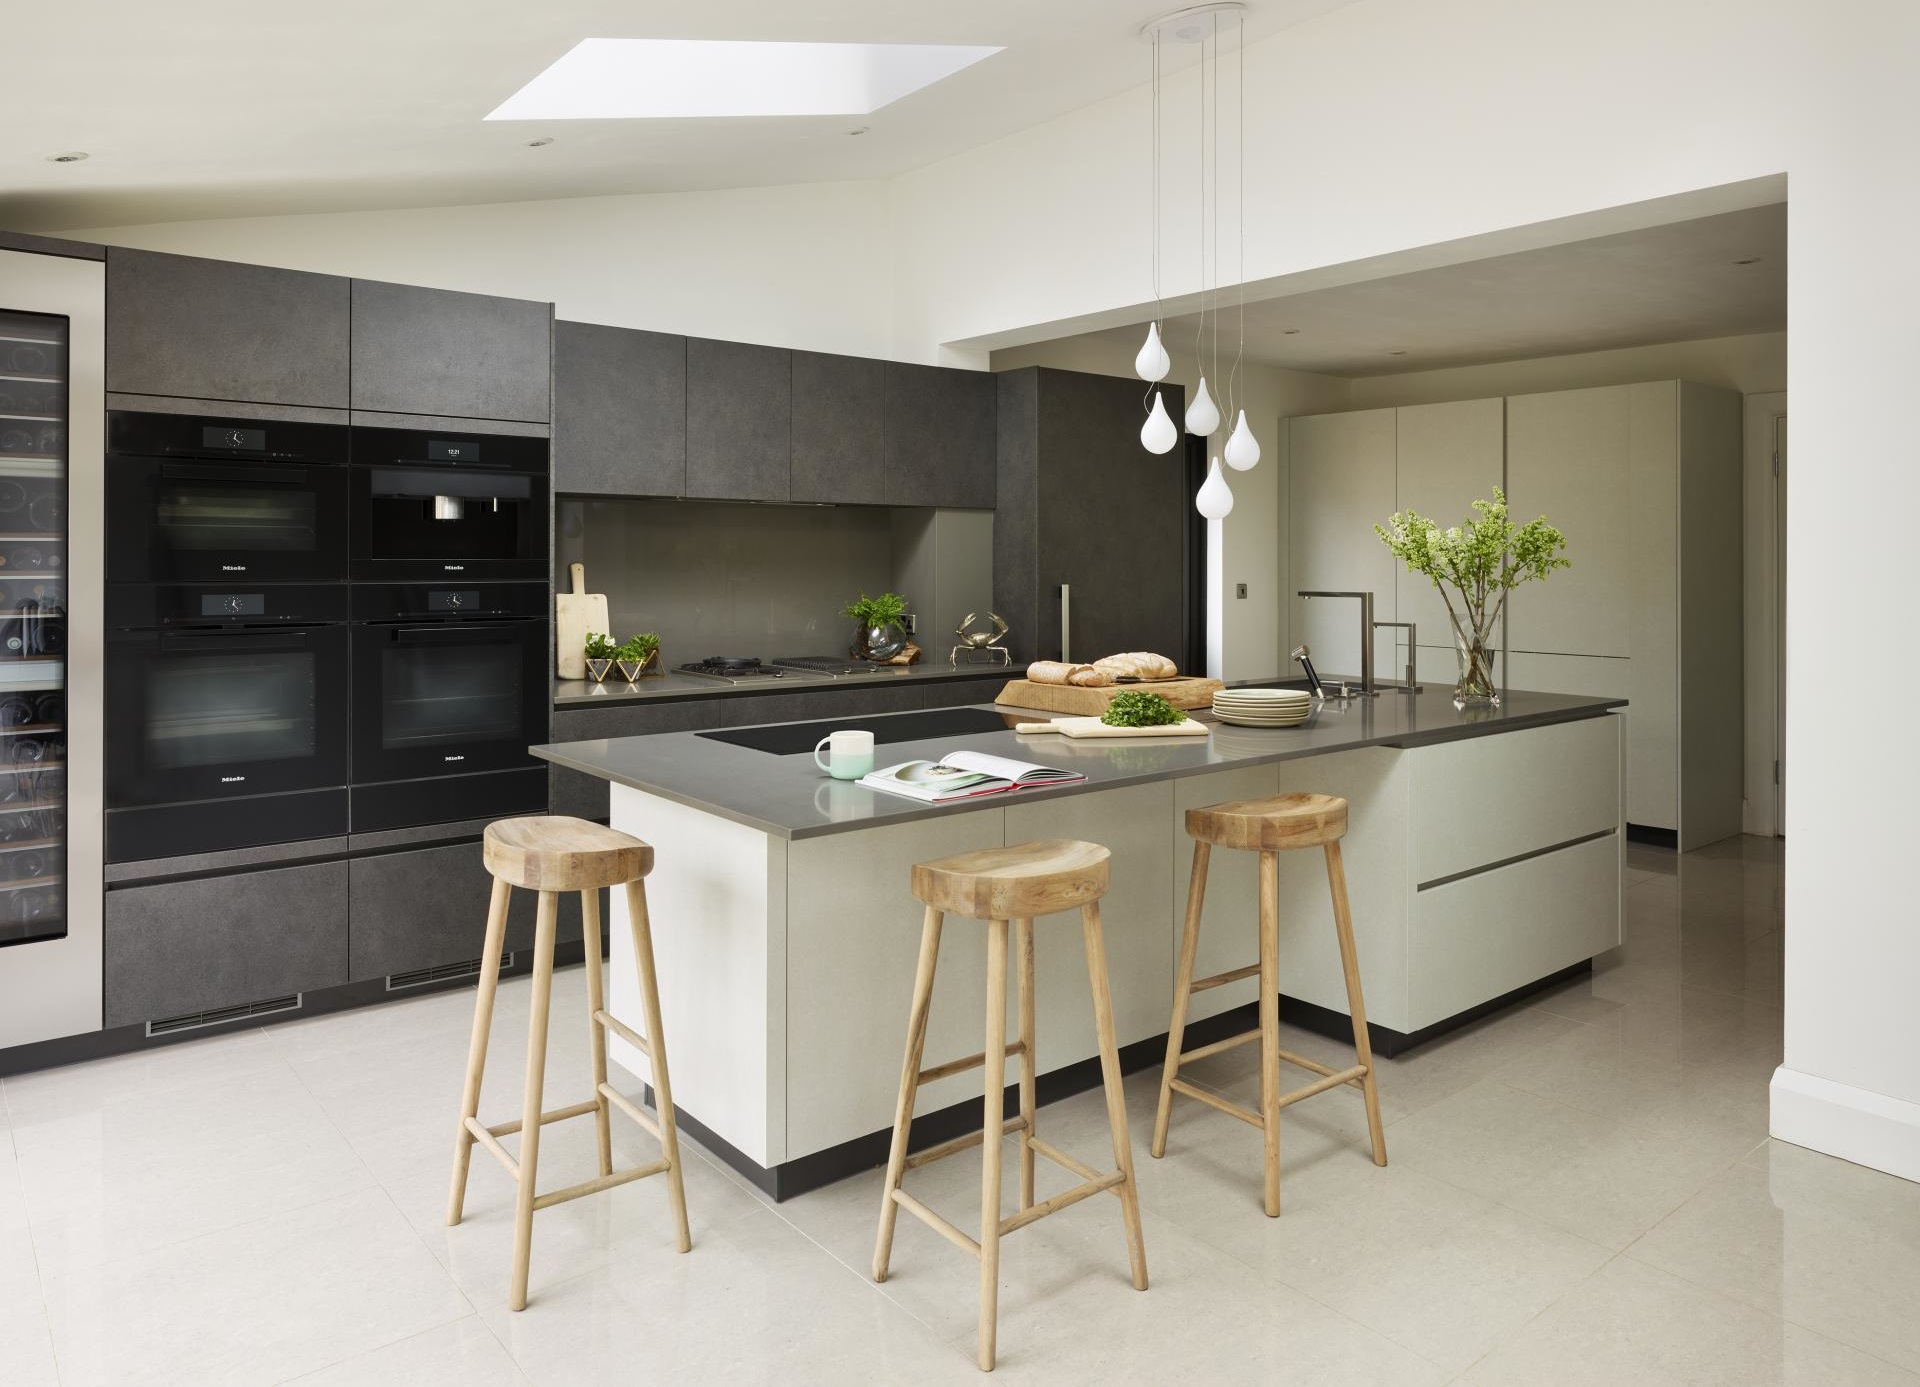 Kitchen design magic: From dark and dingy to bright and airy in 7 ...